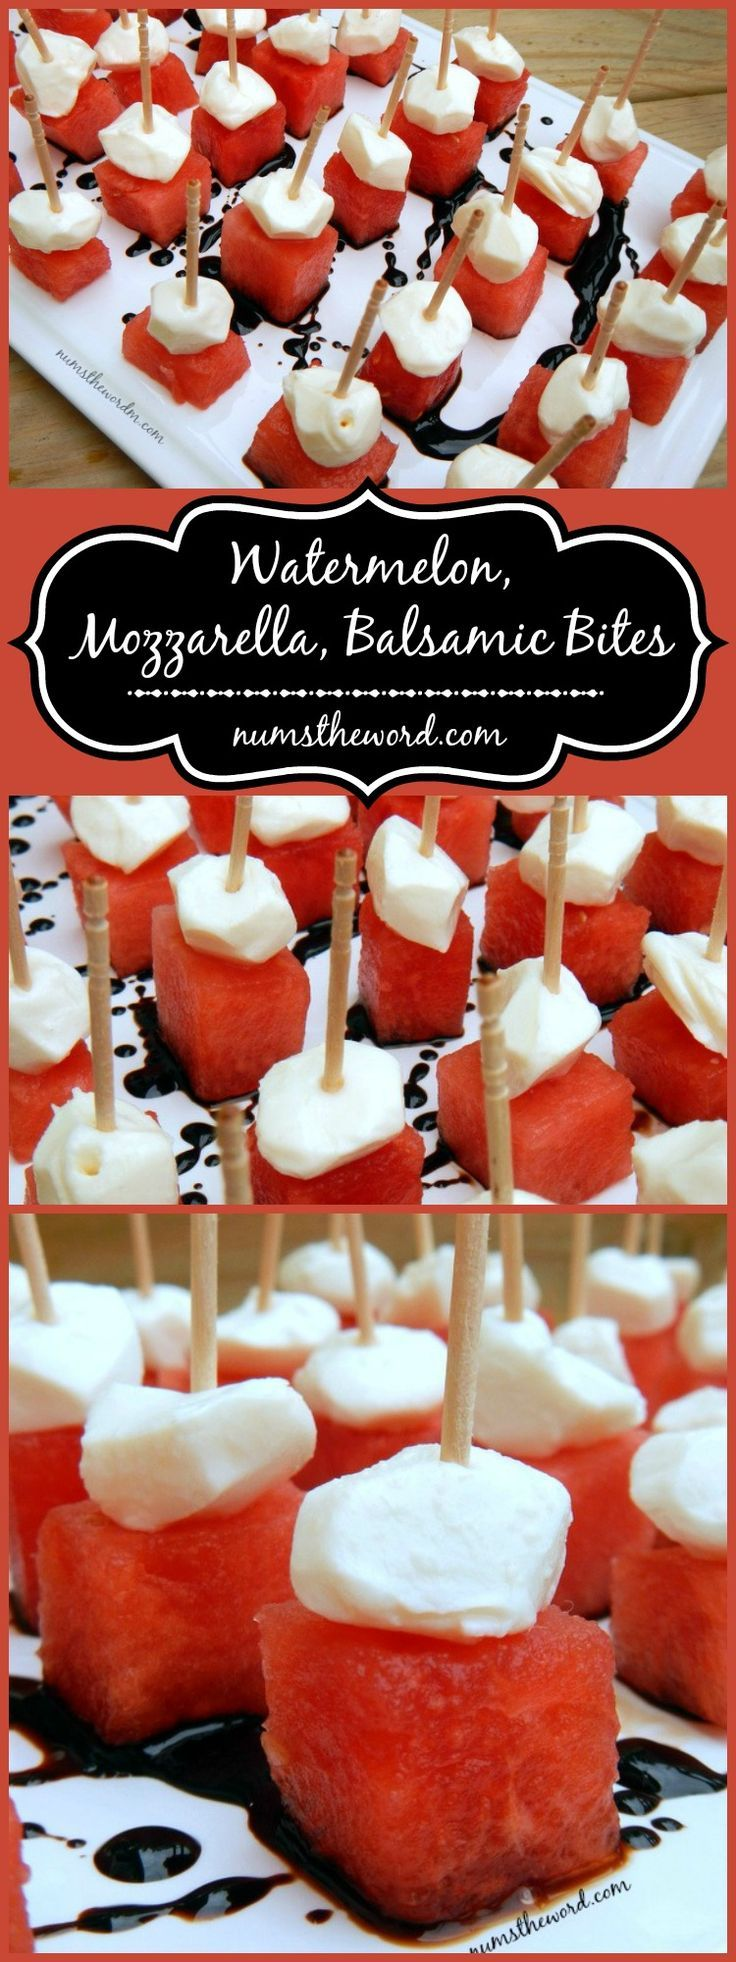 Looking for a simple, refreshing appetizer for your next party? Try these watermelon mozzarella & balsamic bites. They whip up in minutes and taste great!